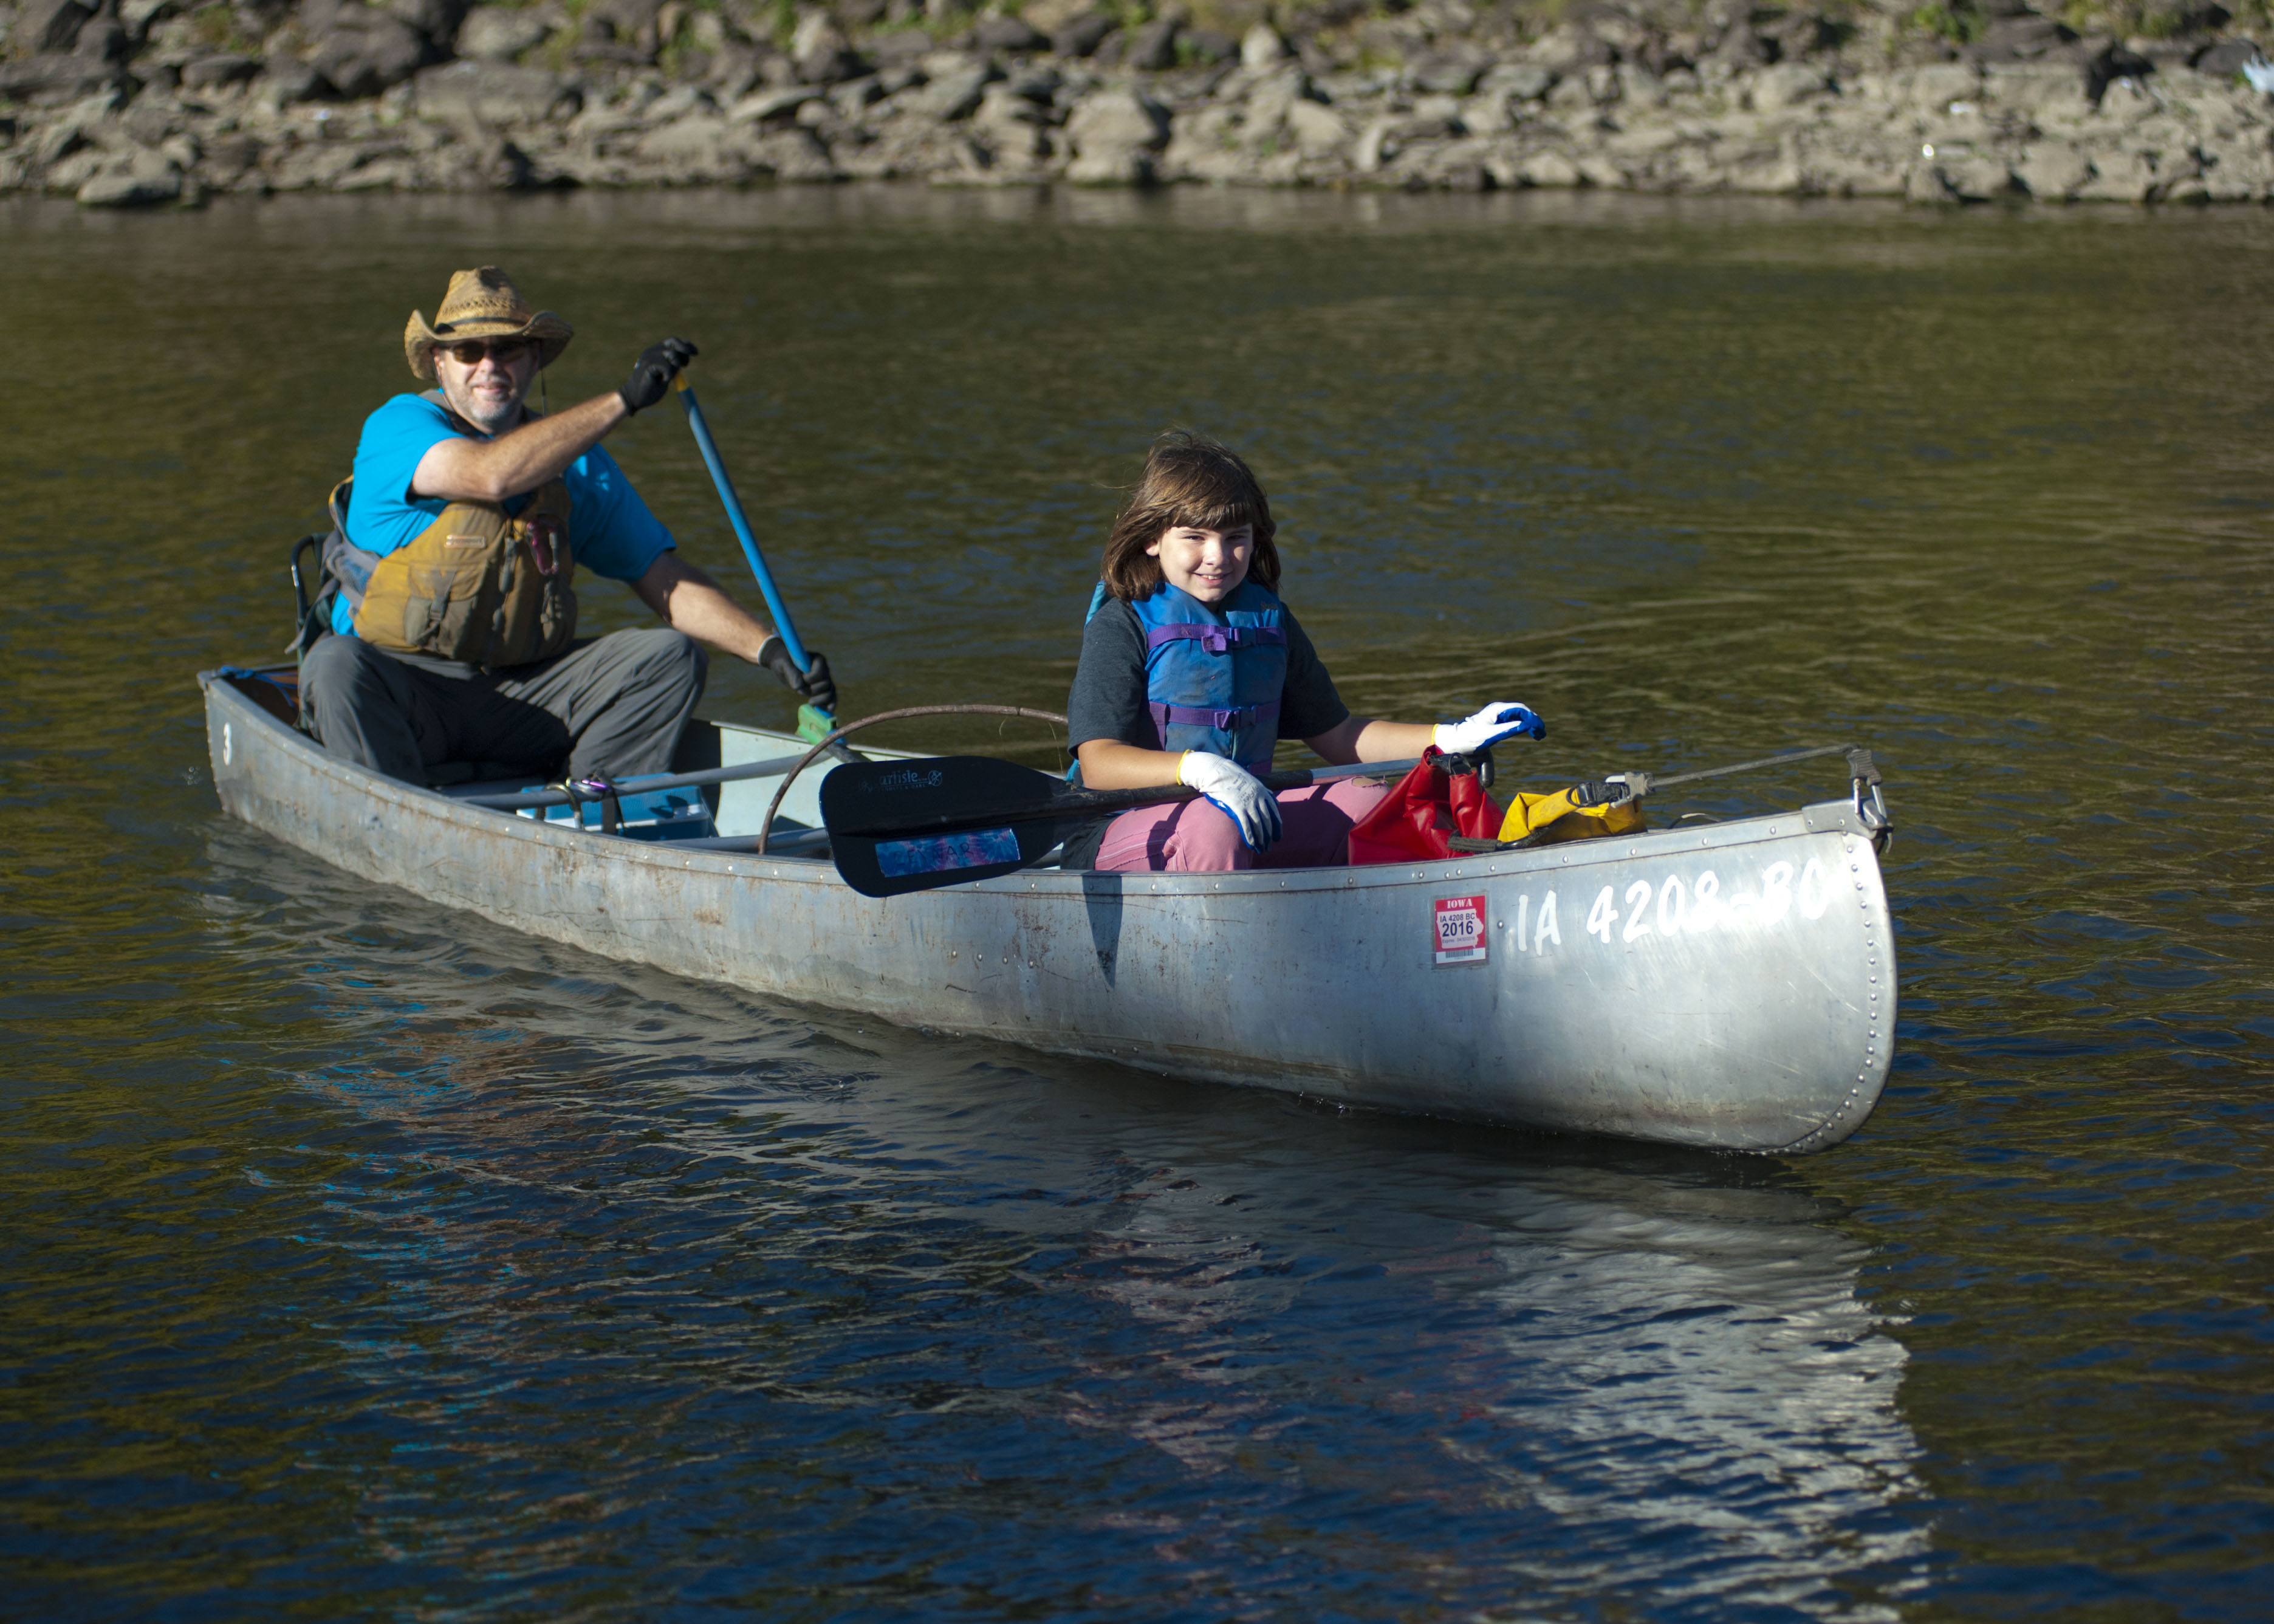 Dan Ceynar, an avid paddler and river clean-up expert, took out his canoe.